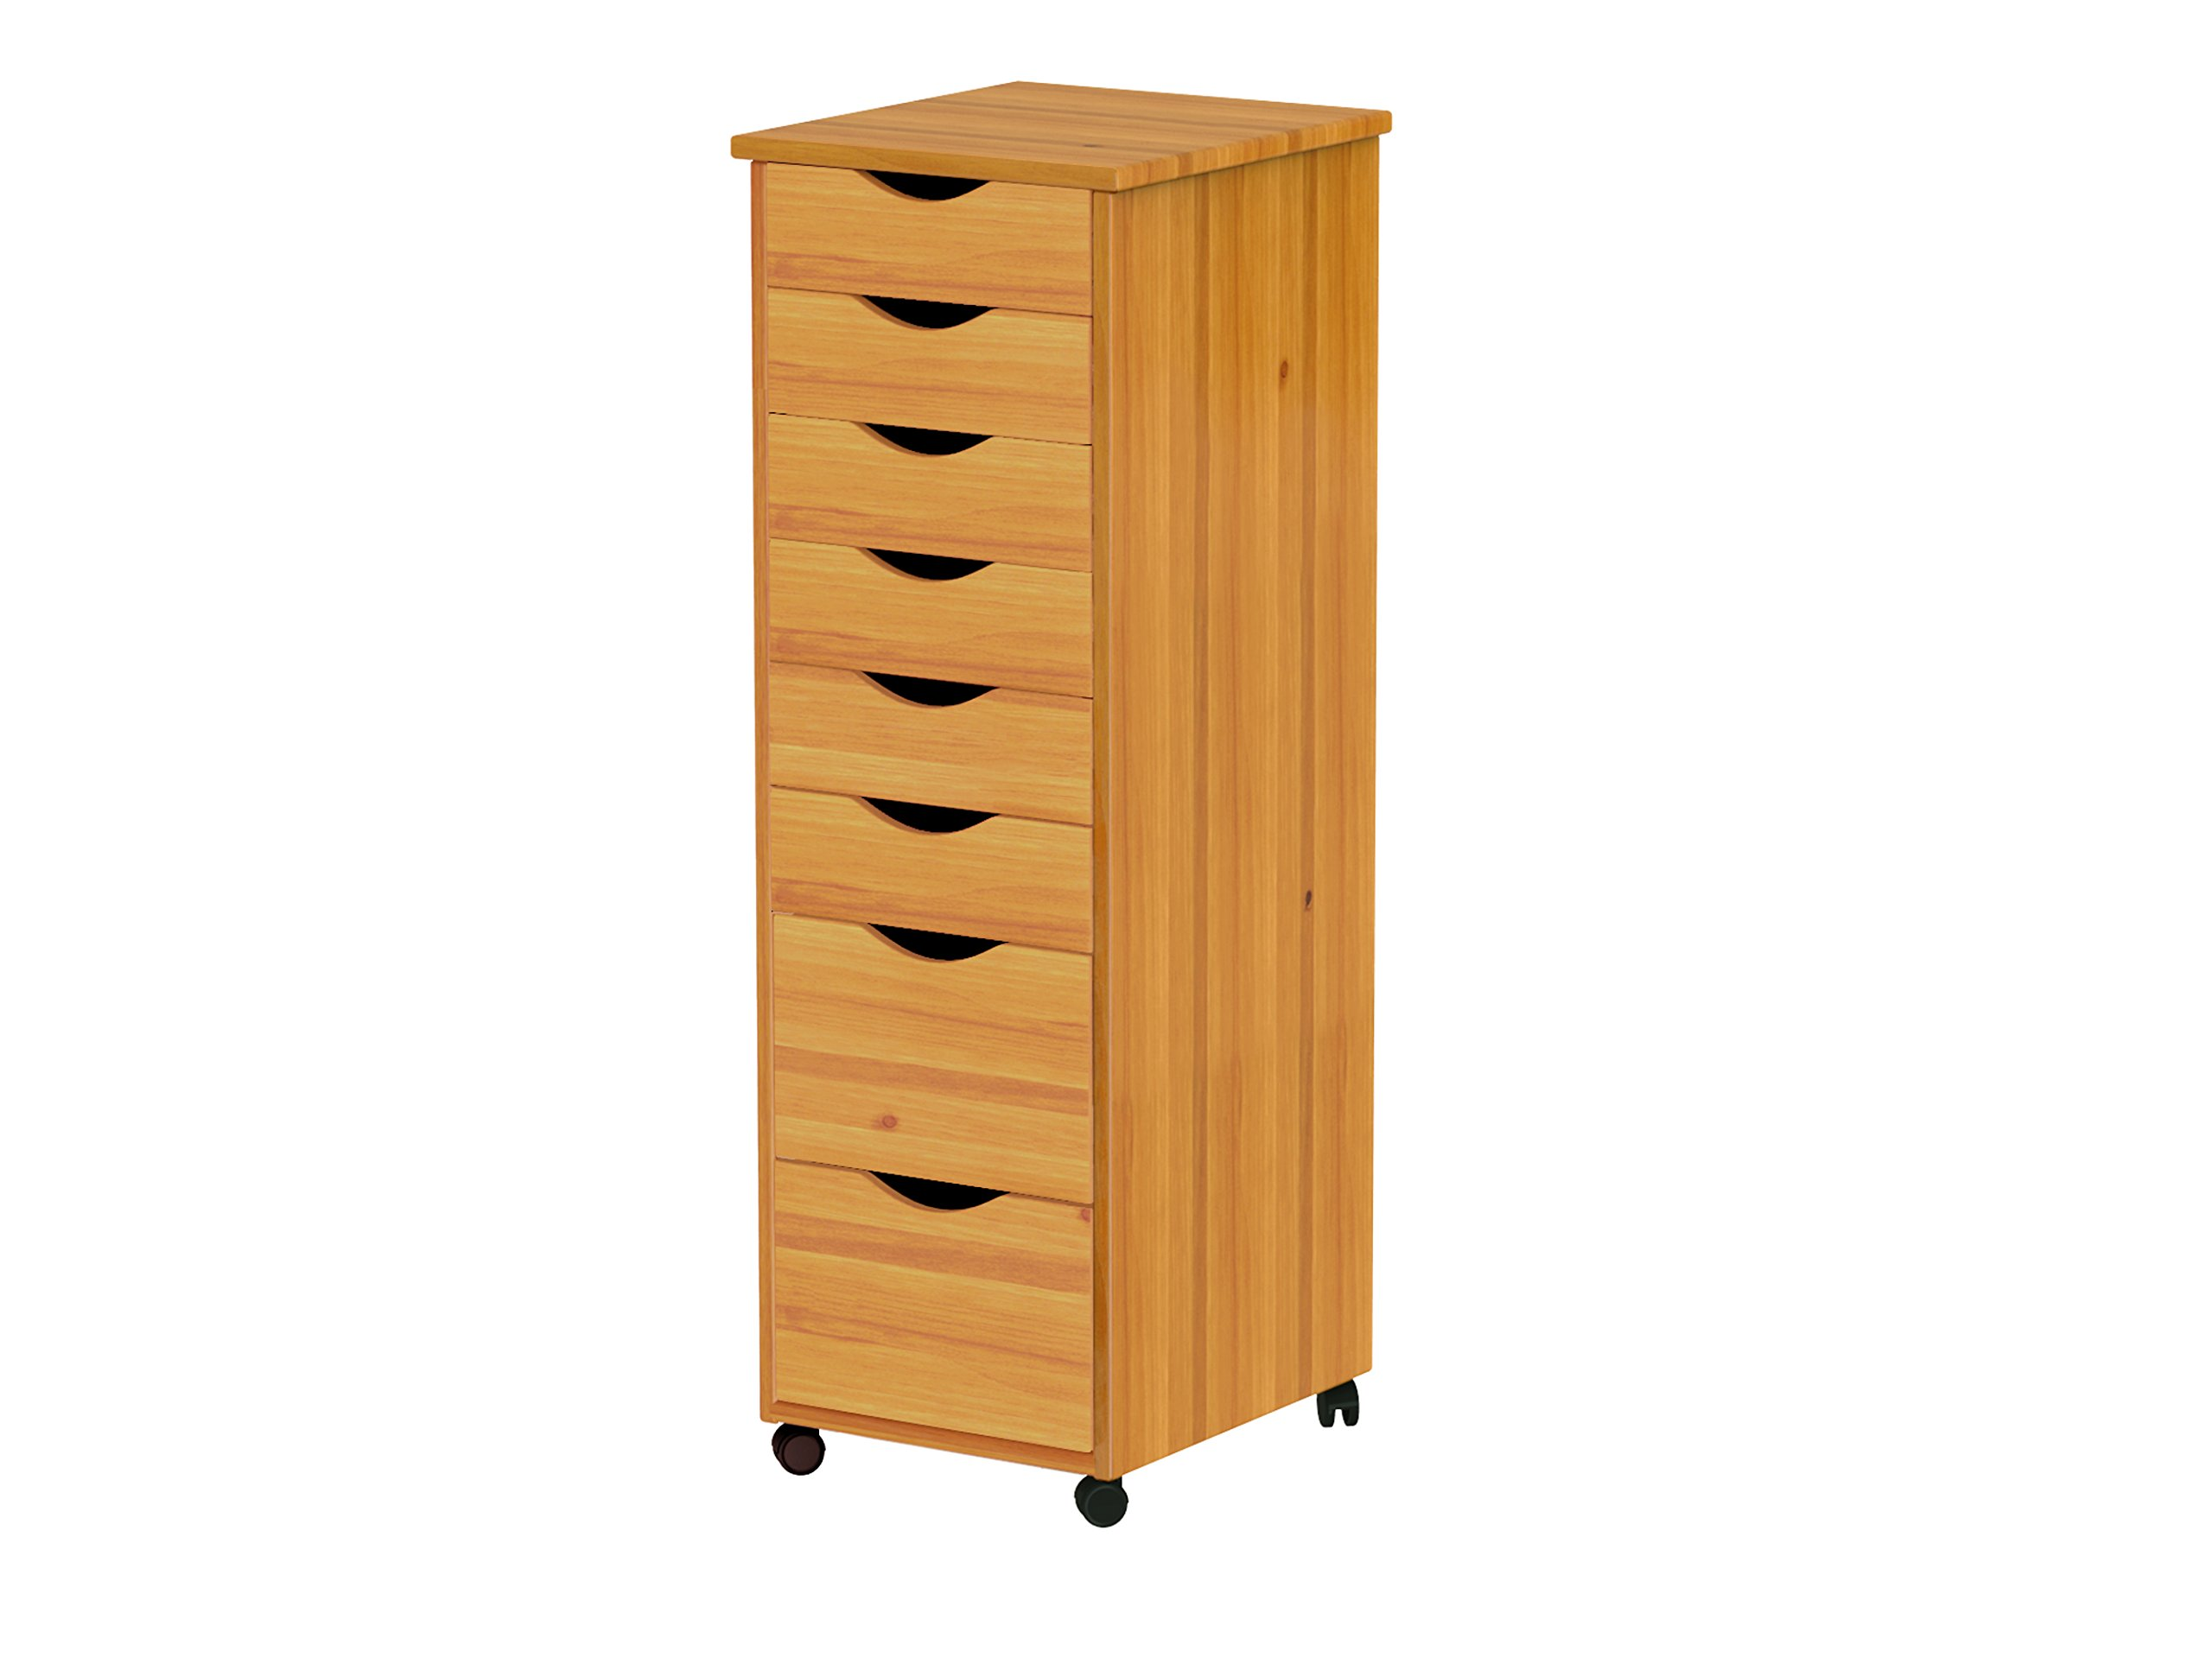 ADEPTUS 76156 8 Drawer Roll Cart, Medium Pine